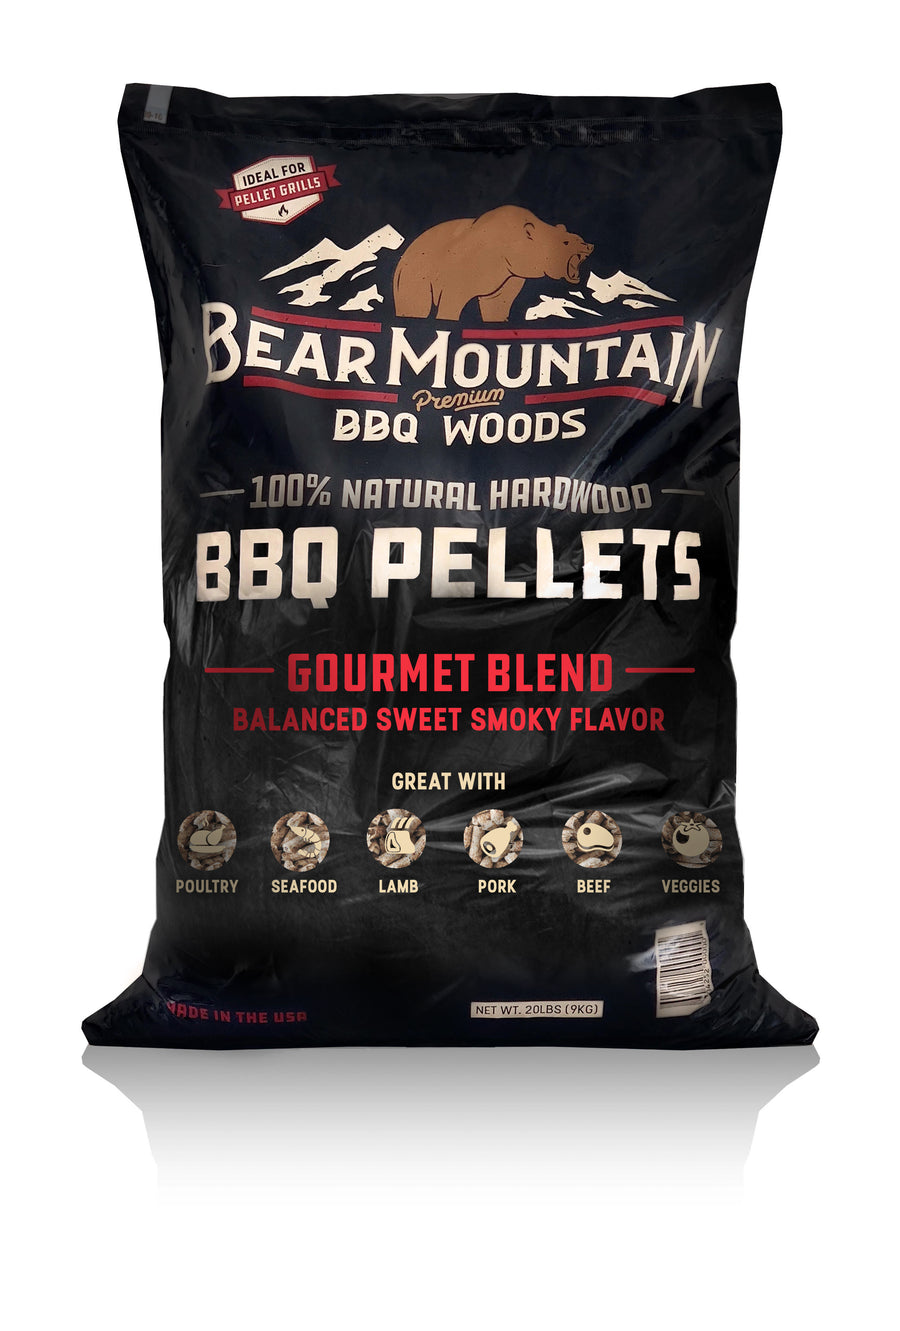 Bear Mountain BBQ Woods | Gourmet Blend